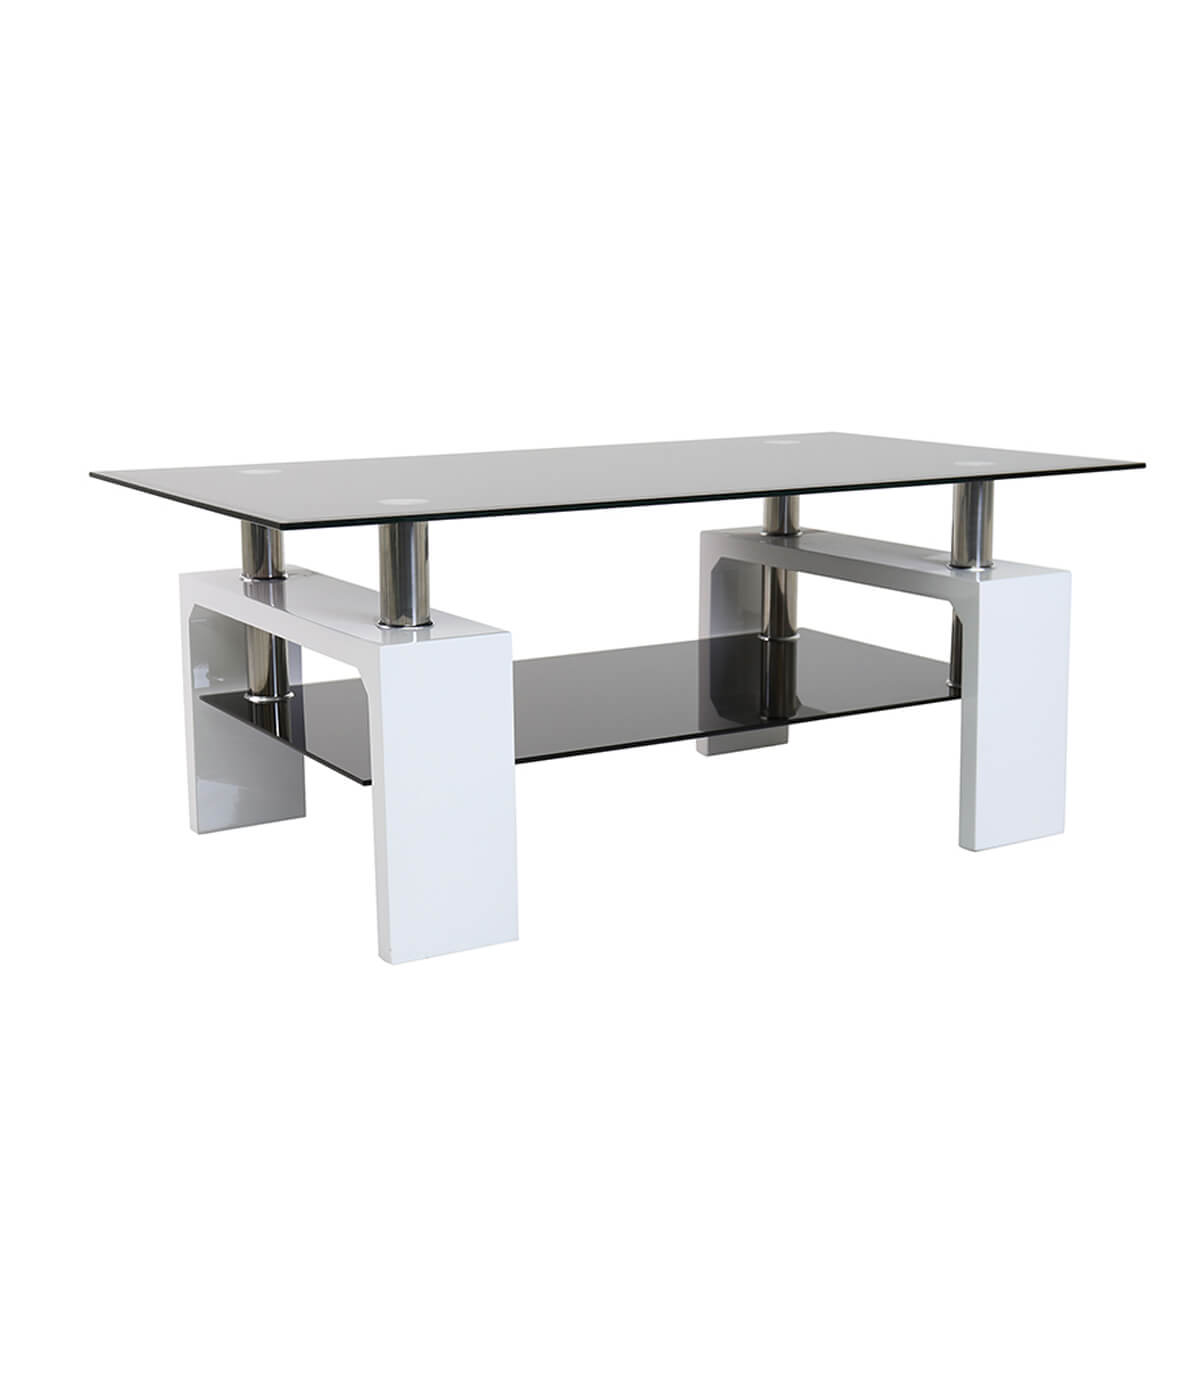 Annika White Gloss Coffee Table: Metro High Gloss Coffee Table White